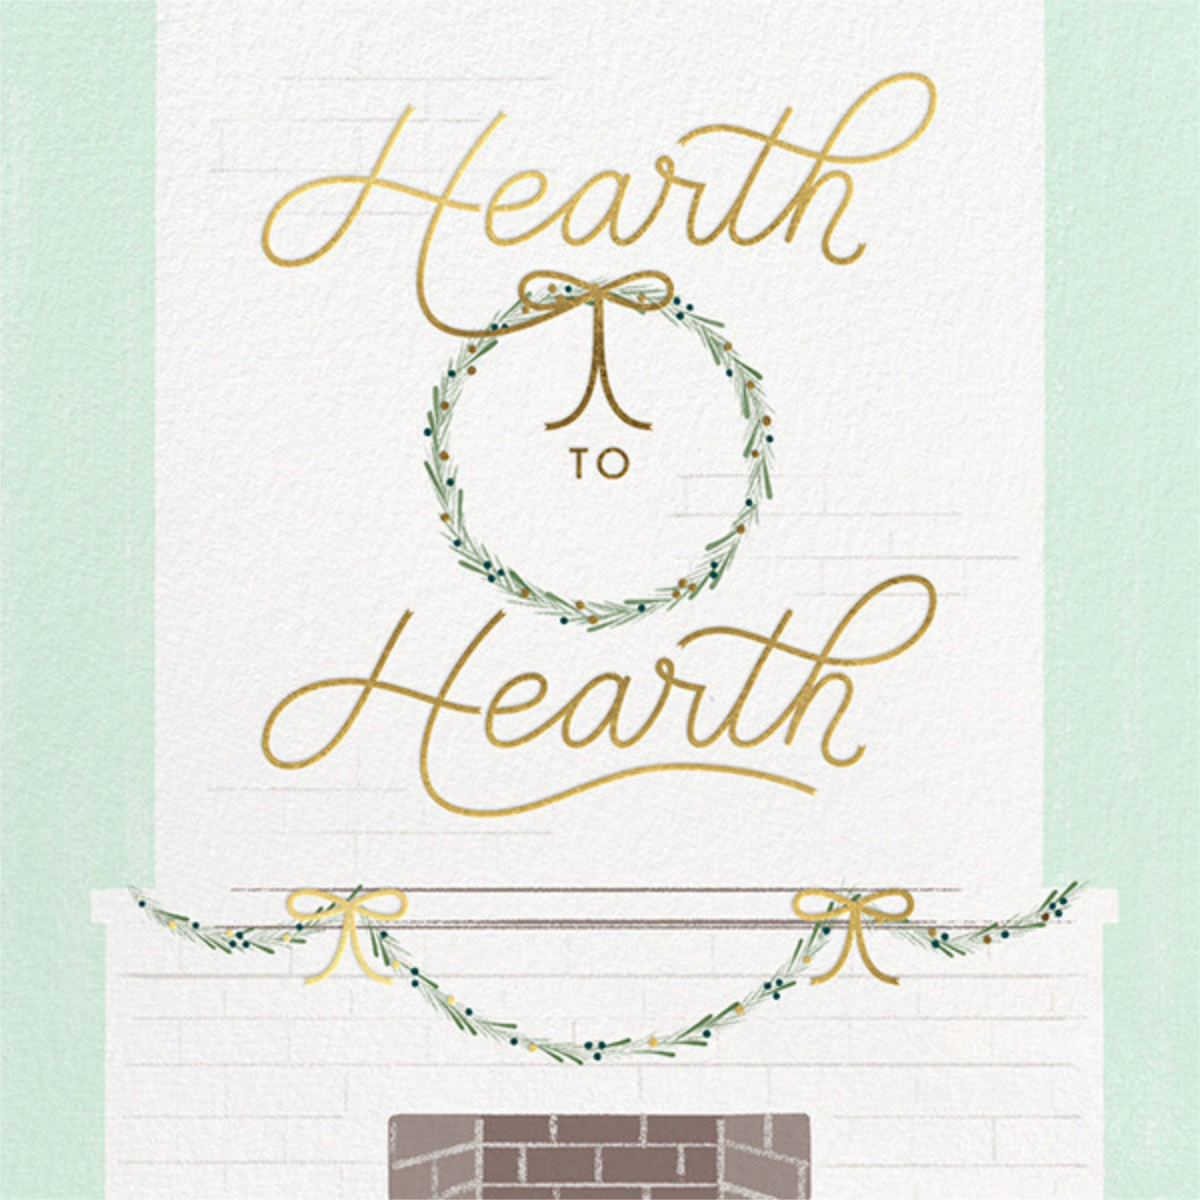 Hearth to Hearth - Paperless Post - Holiday cards